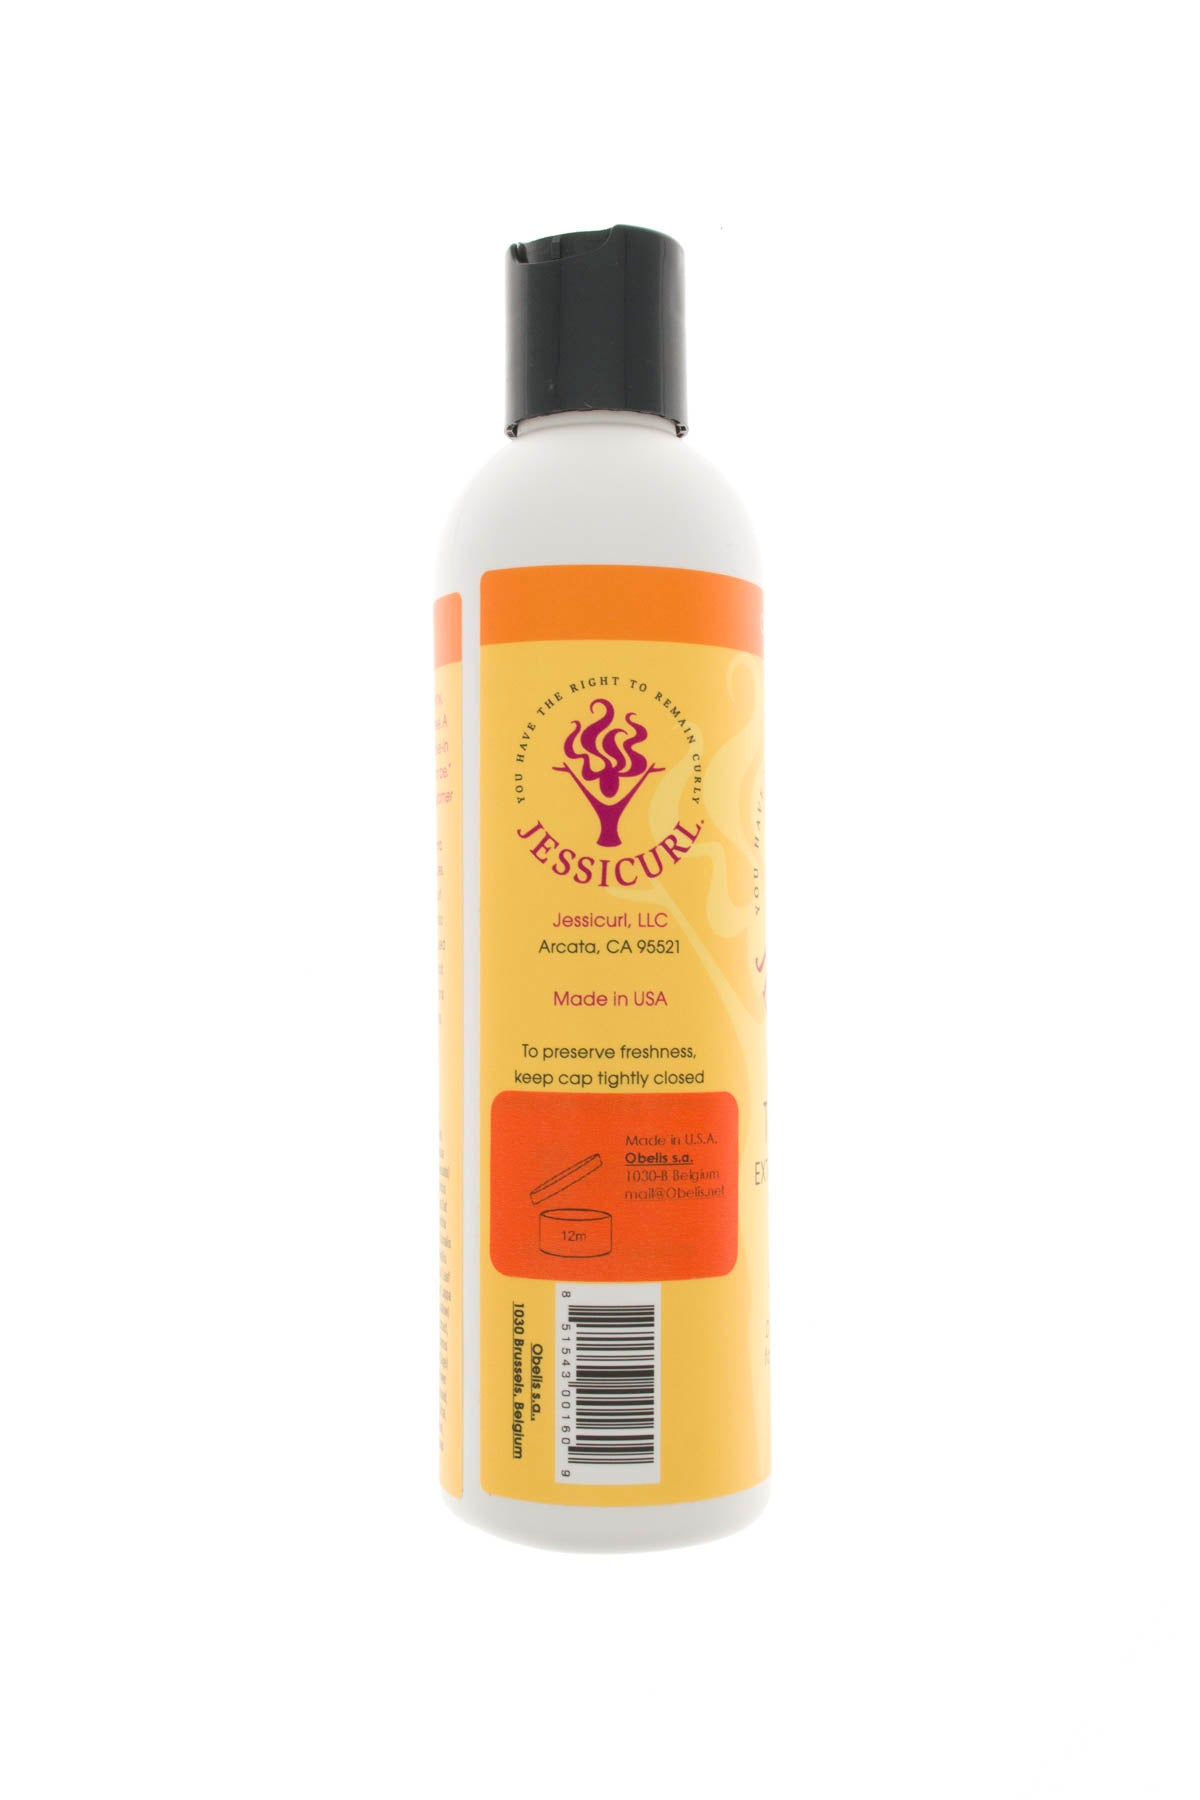 Too Shea Curly Hair Conditioner - Jessicurl